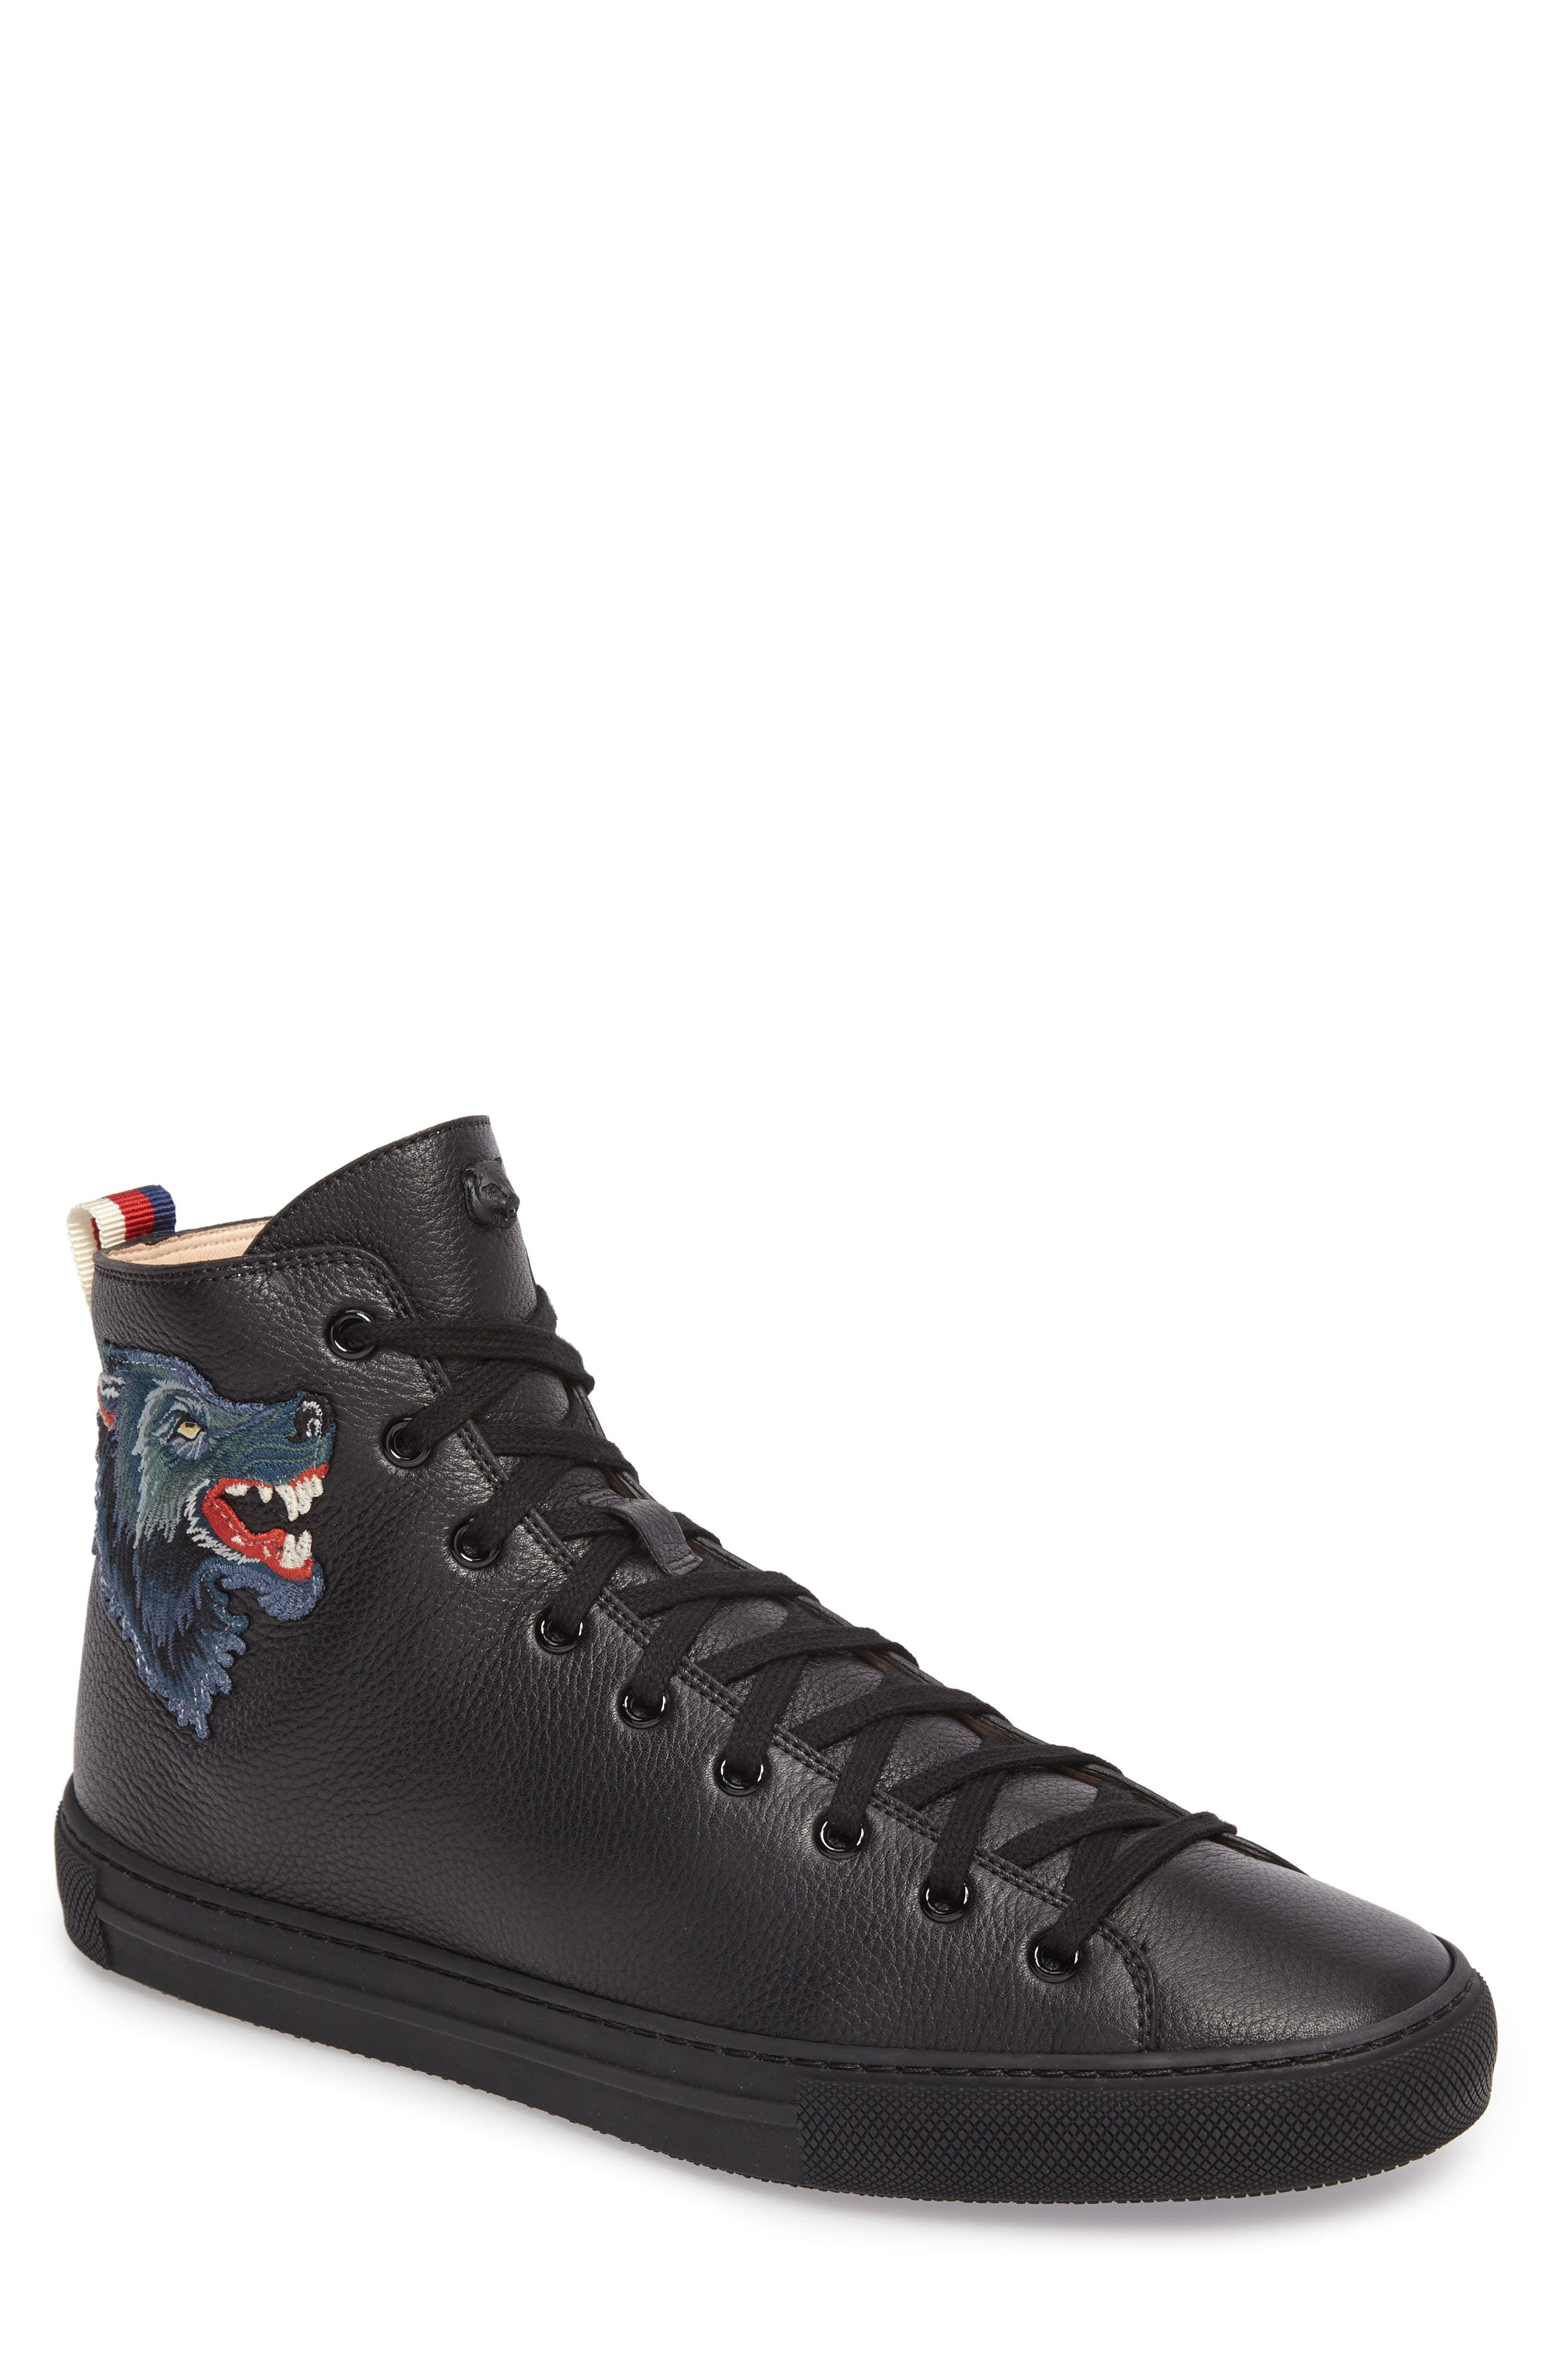 Alternate Image 1 Selected - Gucci Major Angry Wolf Sneaker (Men)